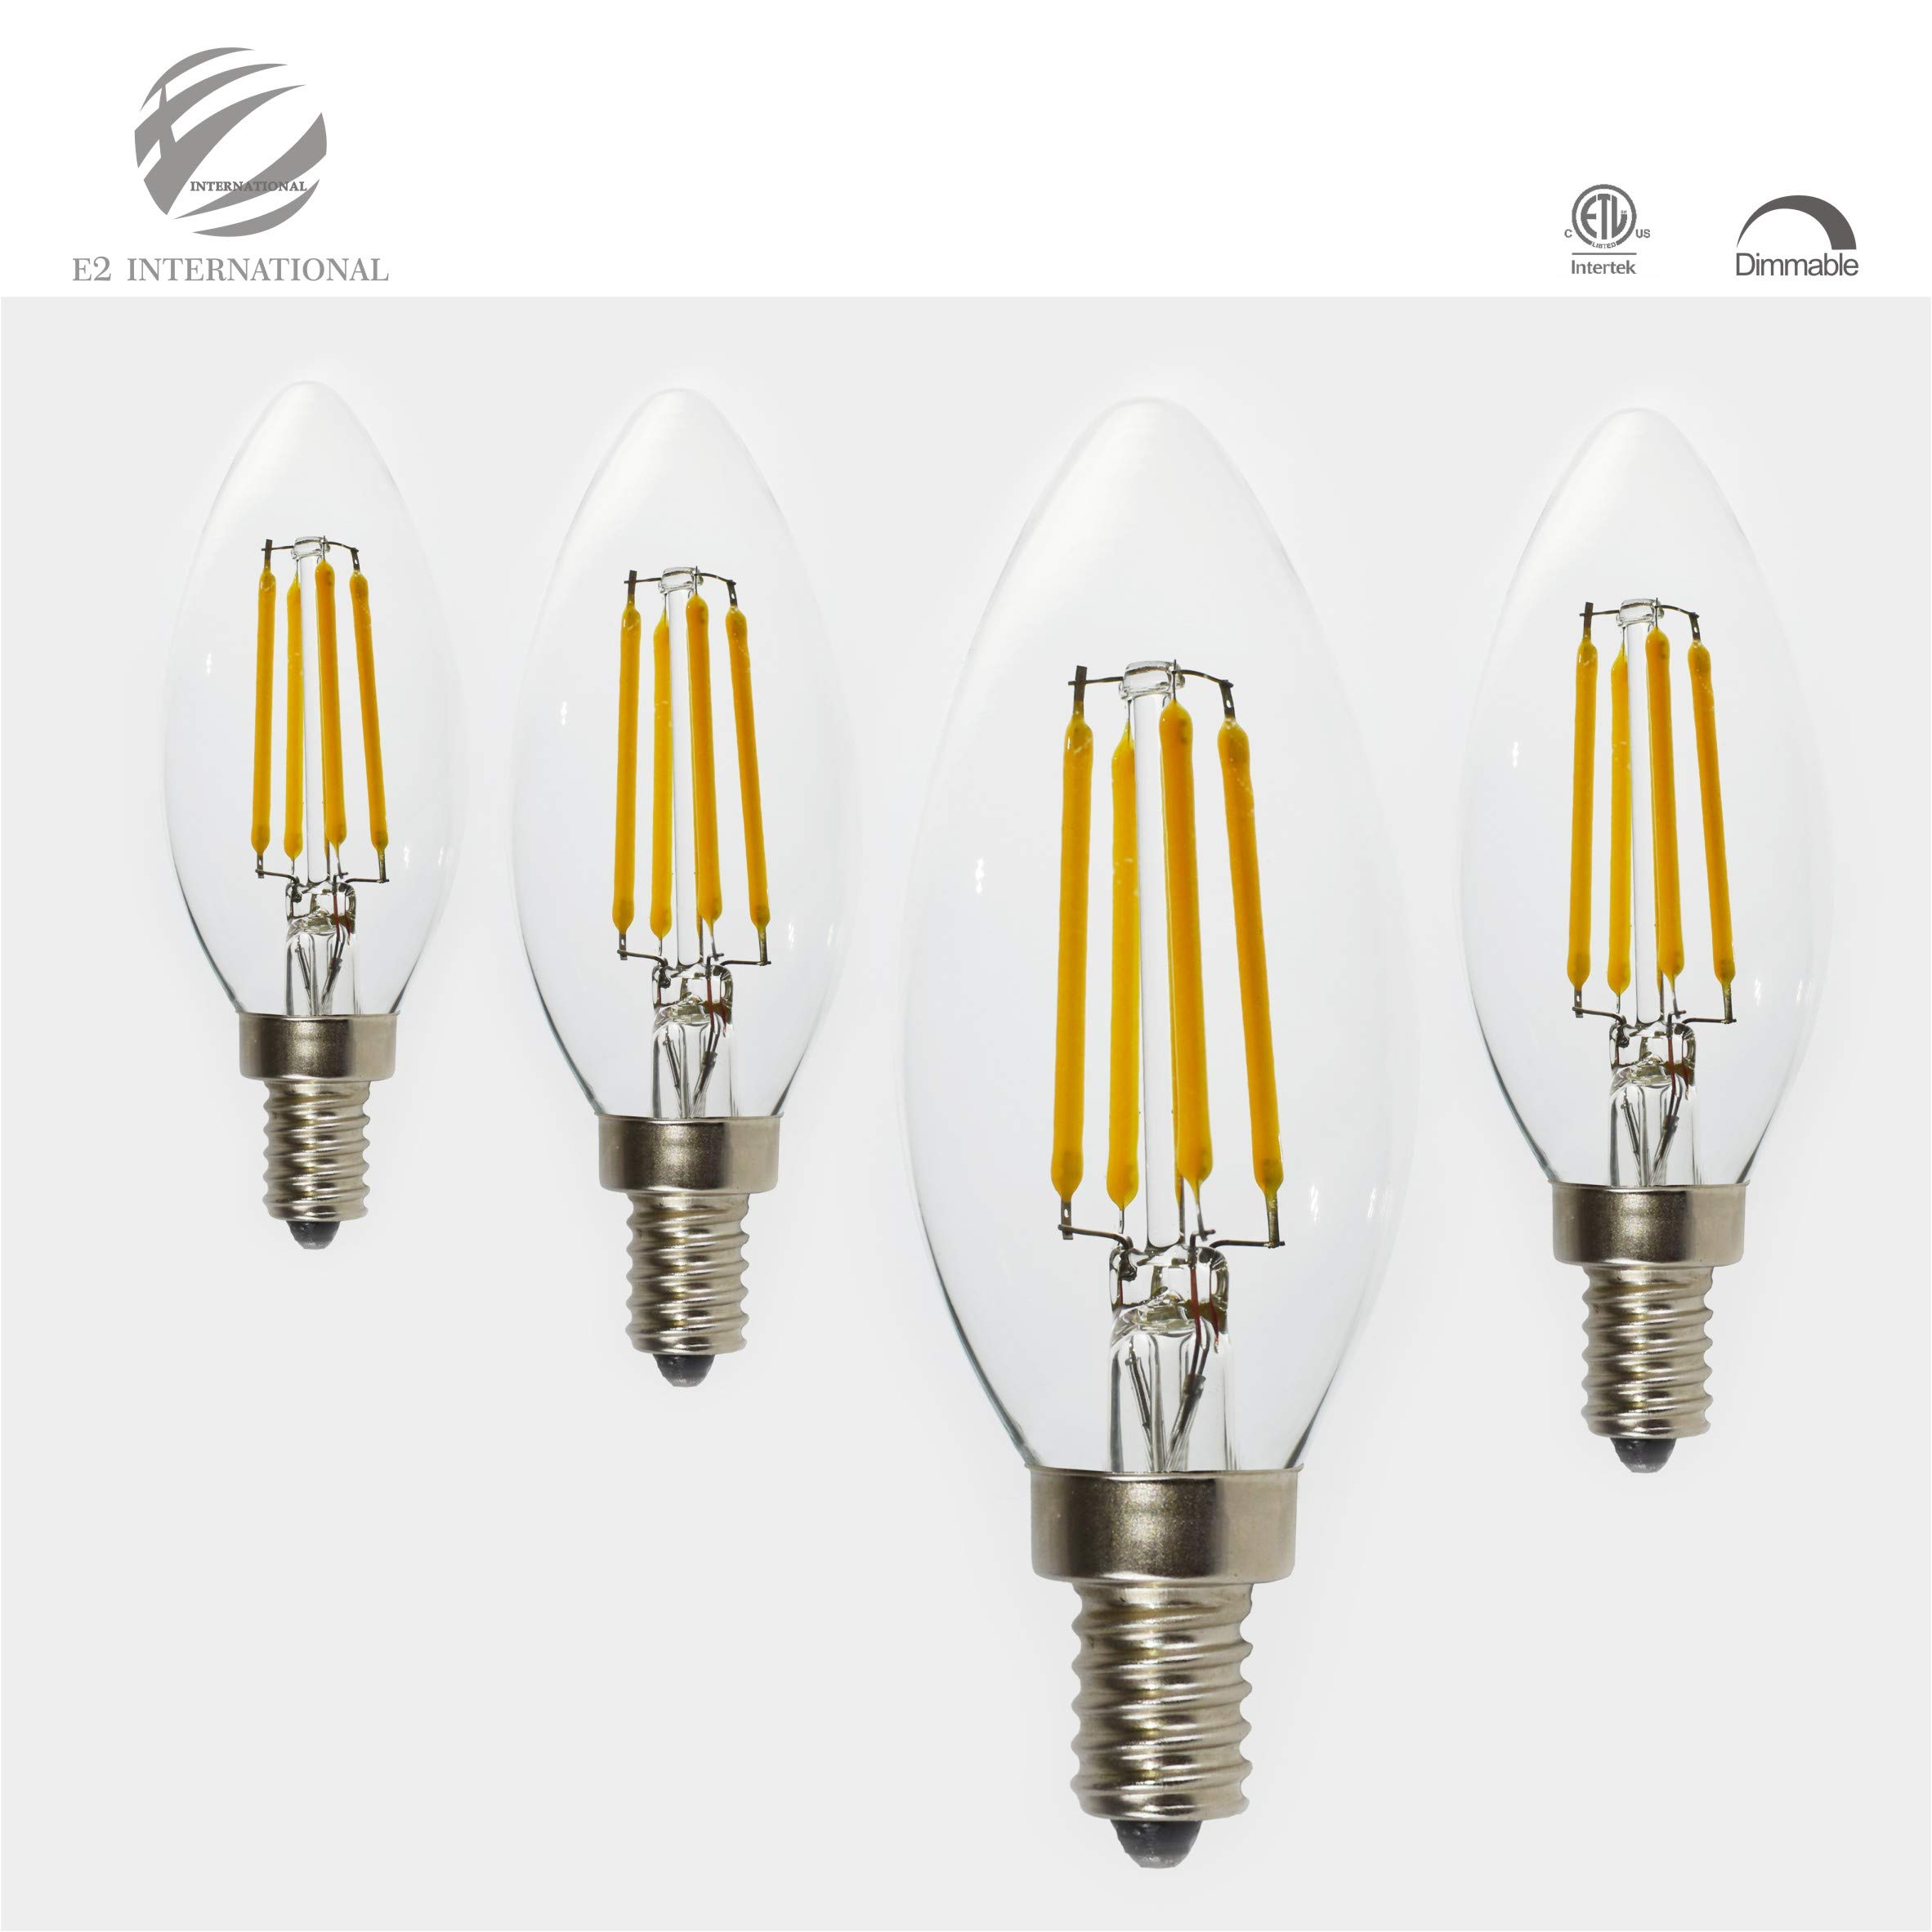 E2INTL LED Candelabra Bulbs, E12 LED Filament Bulbs, Pack of 4 - C35 Candle Light Bulbs, Triac deep dimmable, 2700K, 4W (40 Watt Incandescent Bulb Replacement), Tested and ETL Listed for Safety.